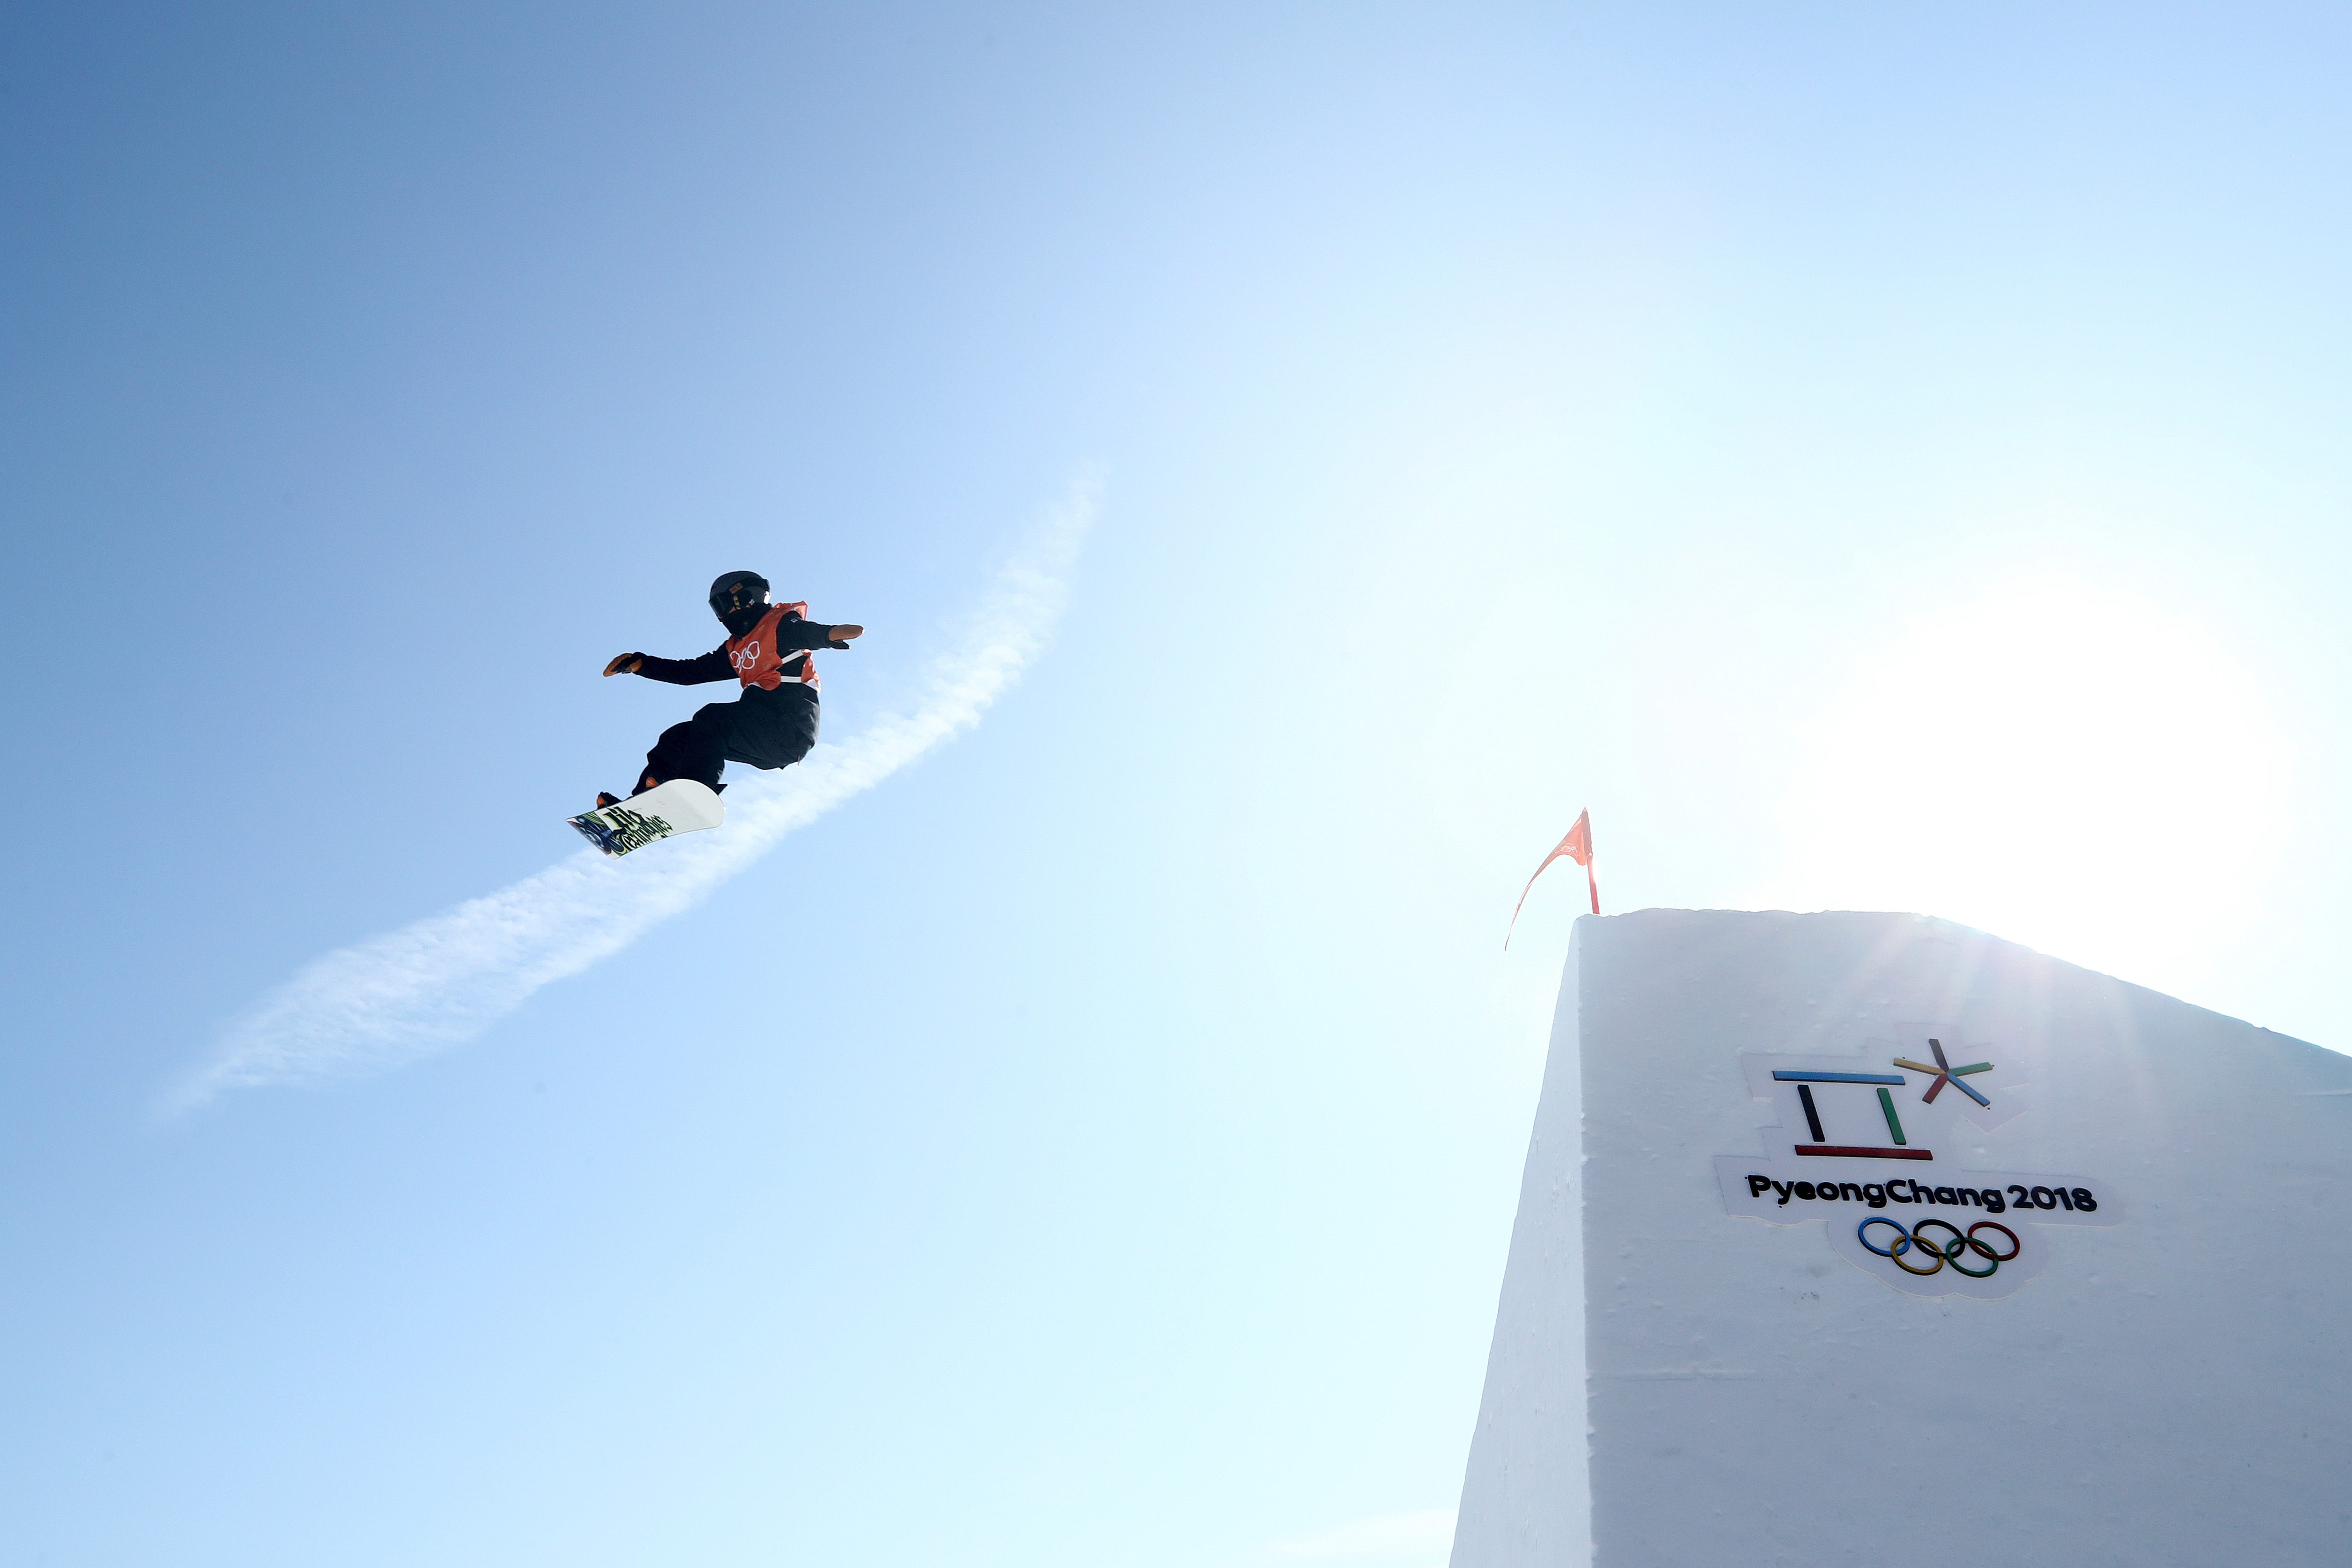 Snowboarding At The 2020 Olympic Winter Games.I Thought Vr Would Make Watching Olympic Snowboarding